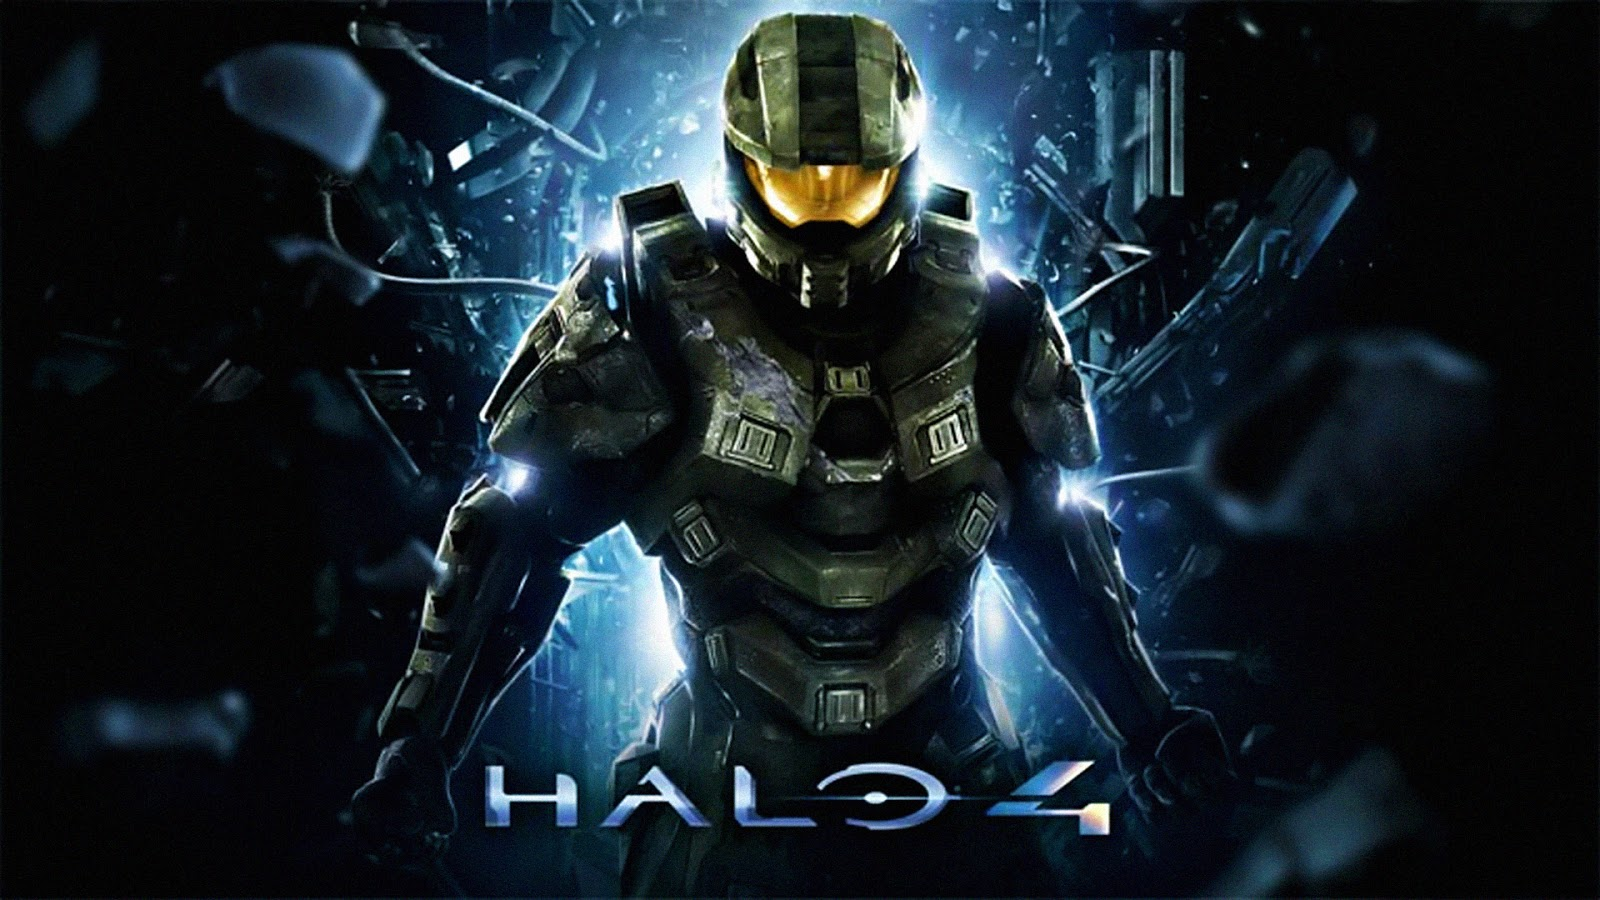 Un Mundo De Raros halo 4 wallpapers 1600x900